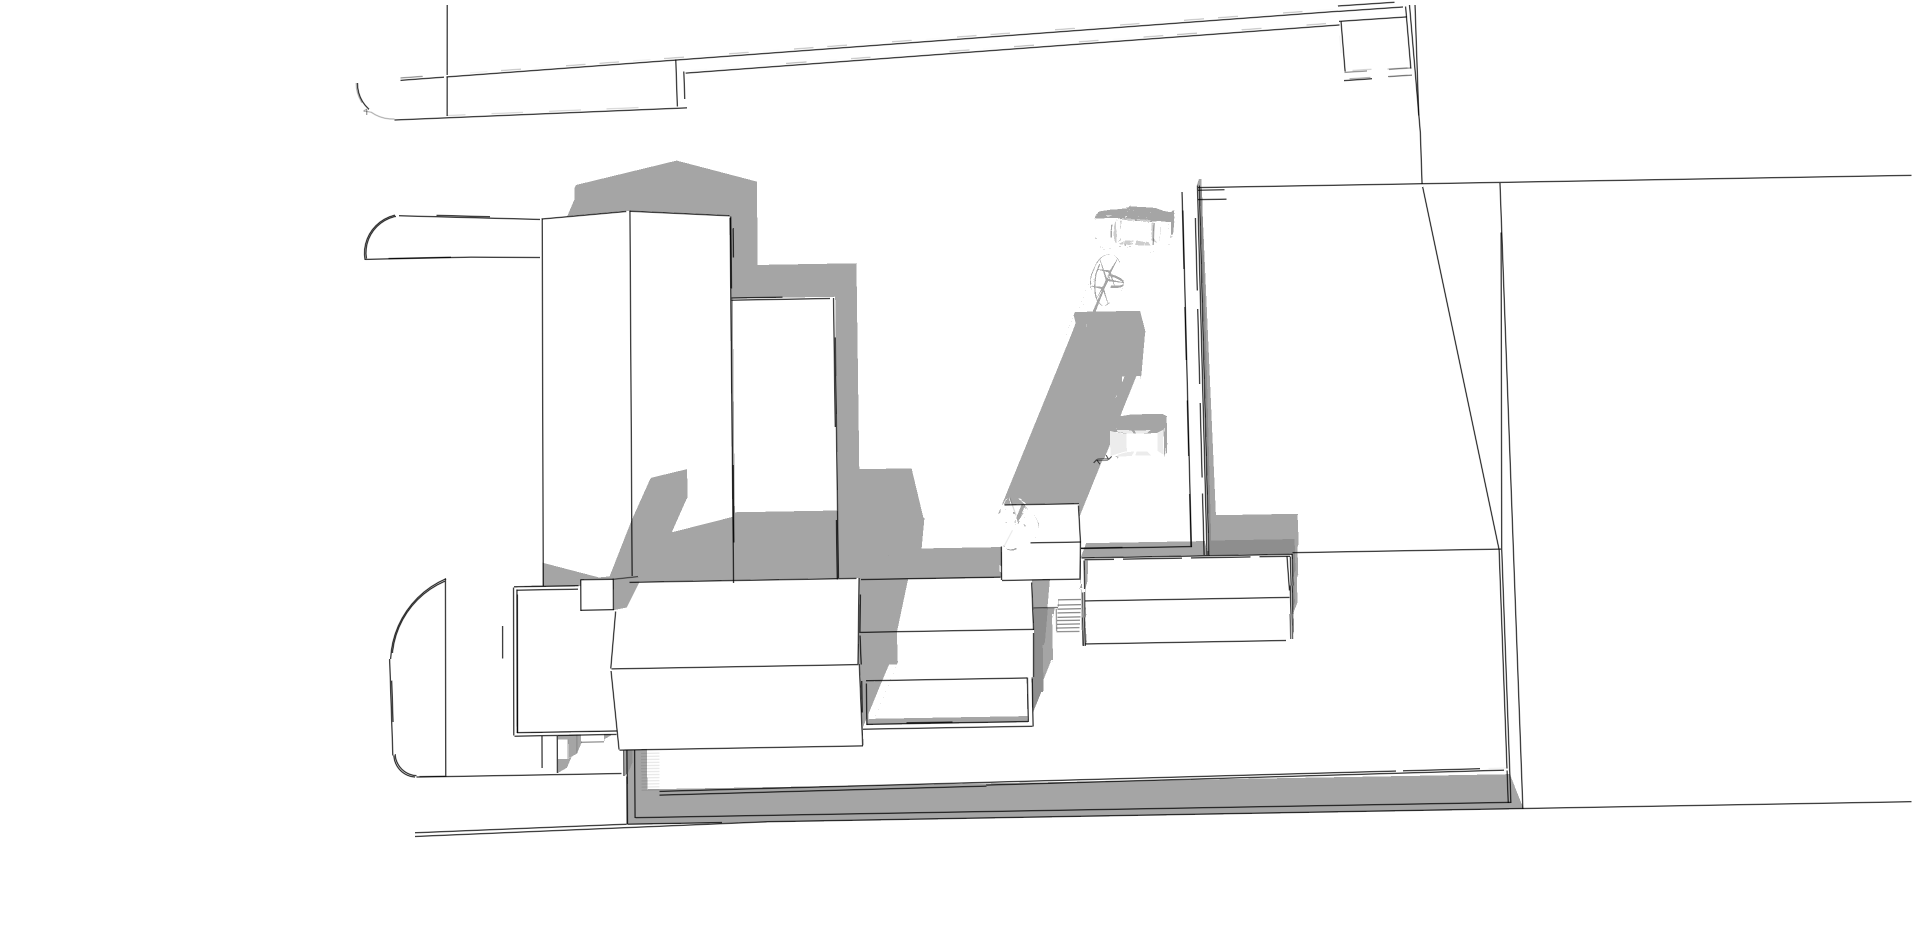 AGCROF FIRE STATION proposed site layout1.png